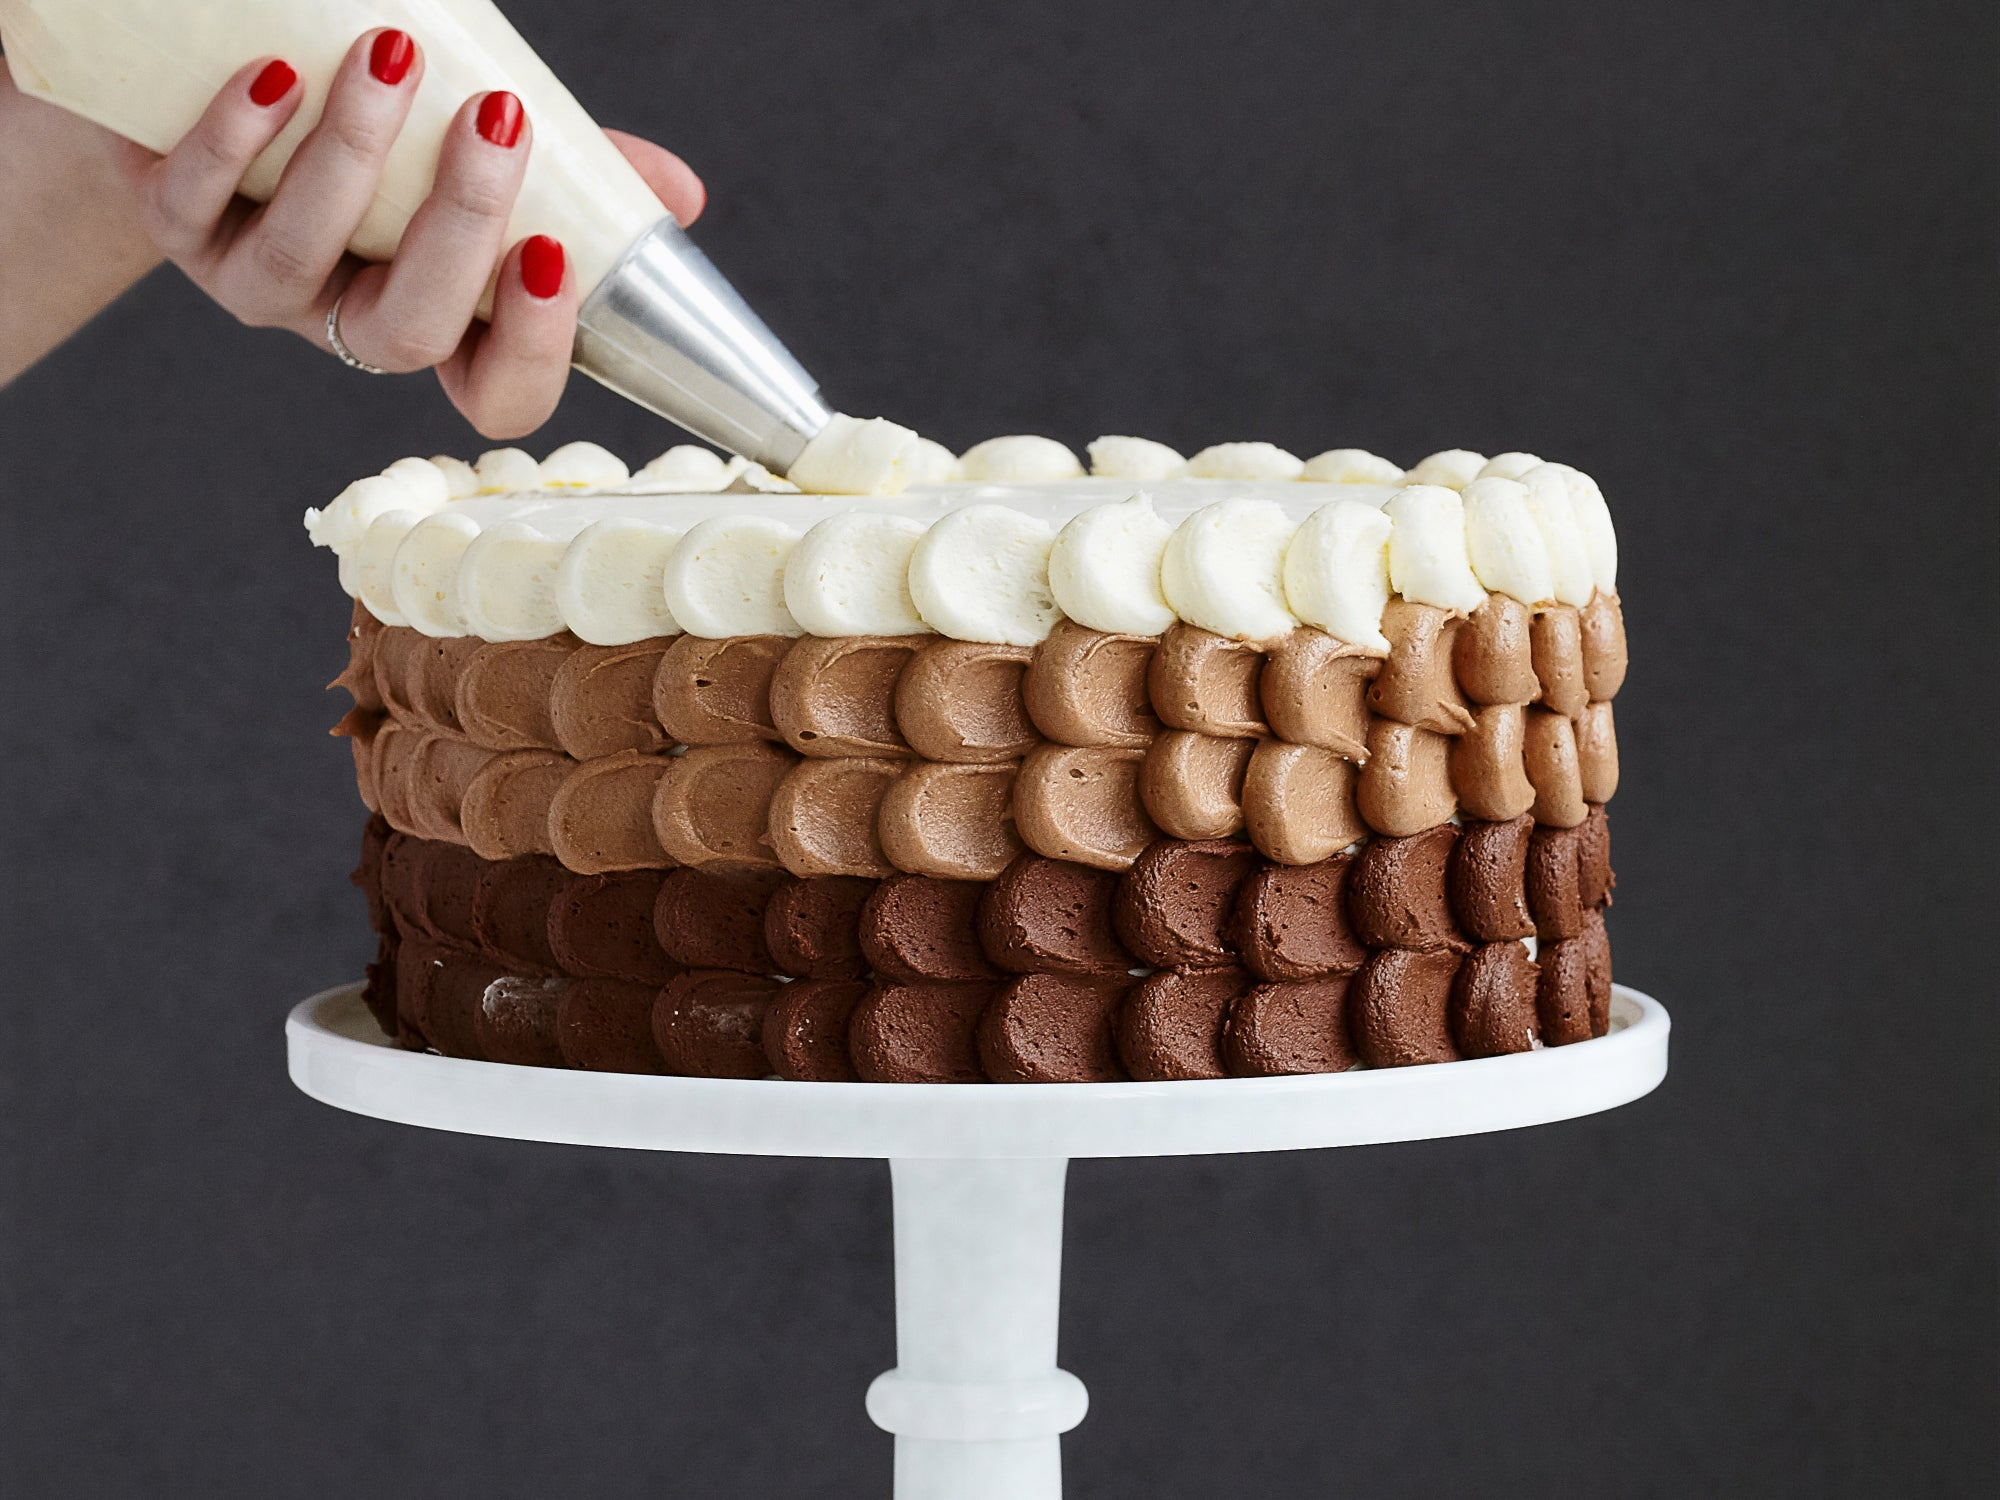 A person using a piping bag to pipe frosting onto a chocolate cake.